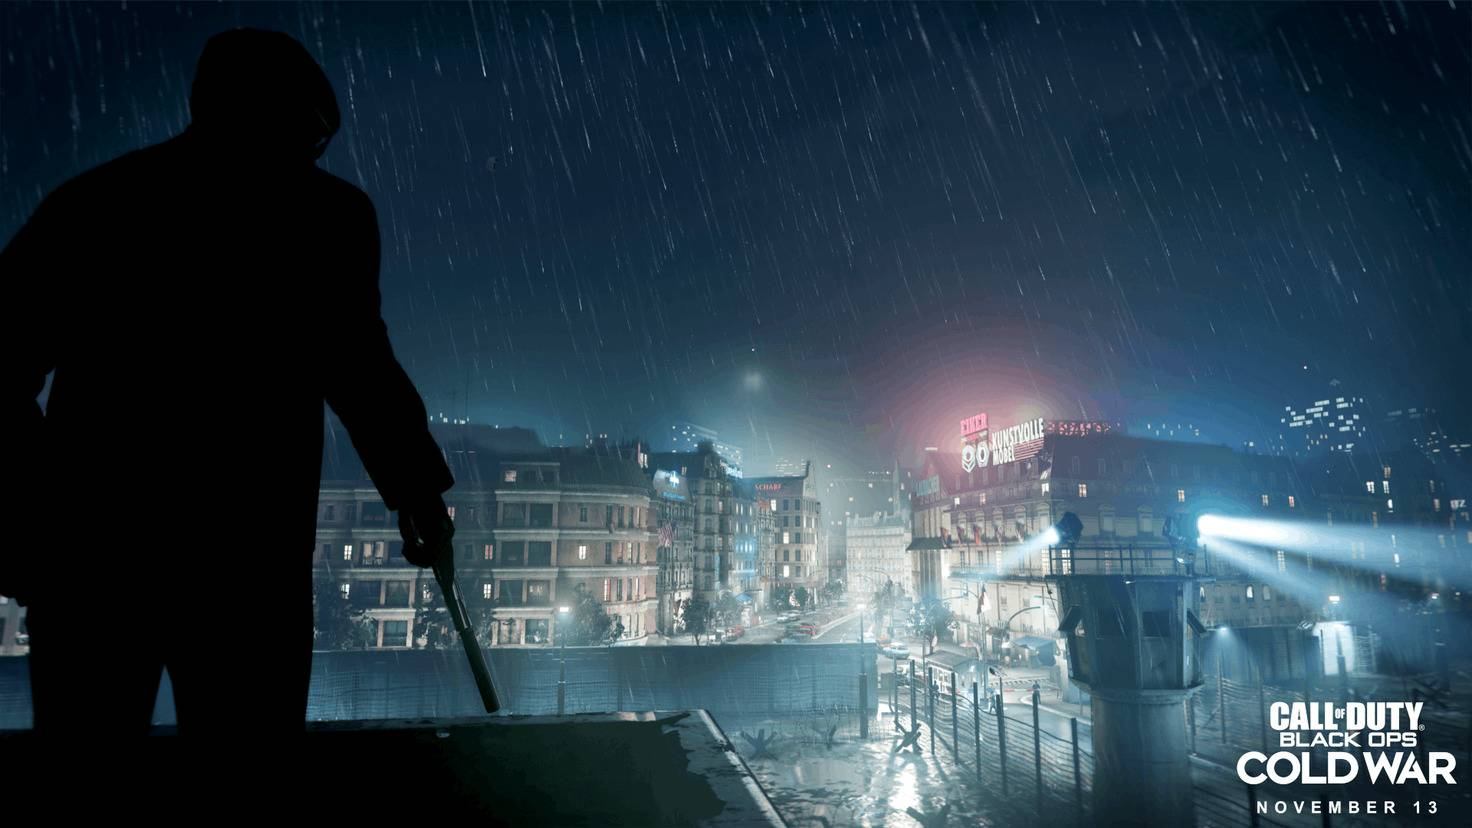 call-of-duty-black-ops-guerre-froide-ville-nuit